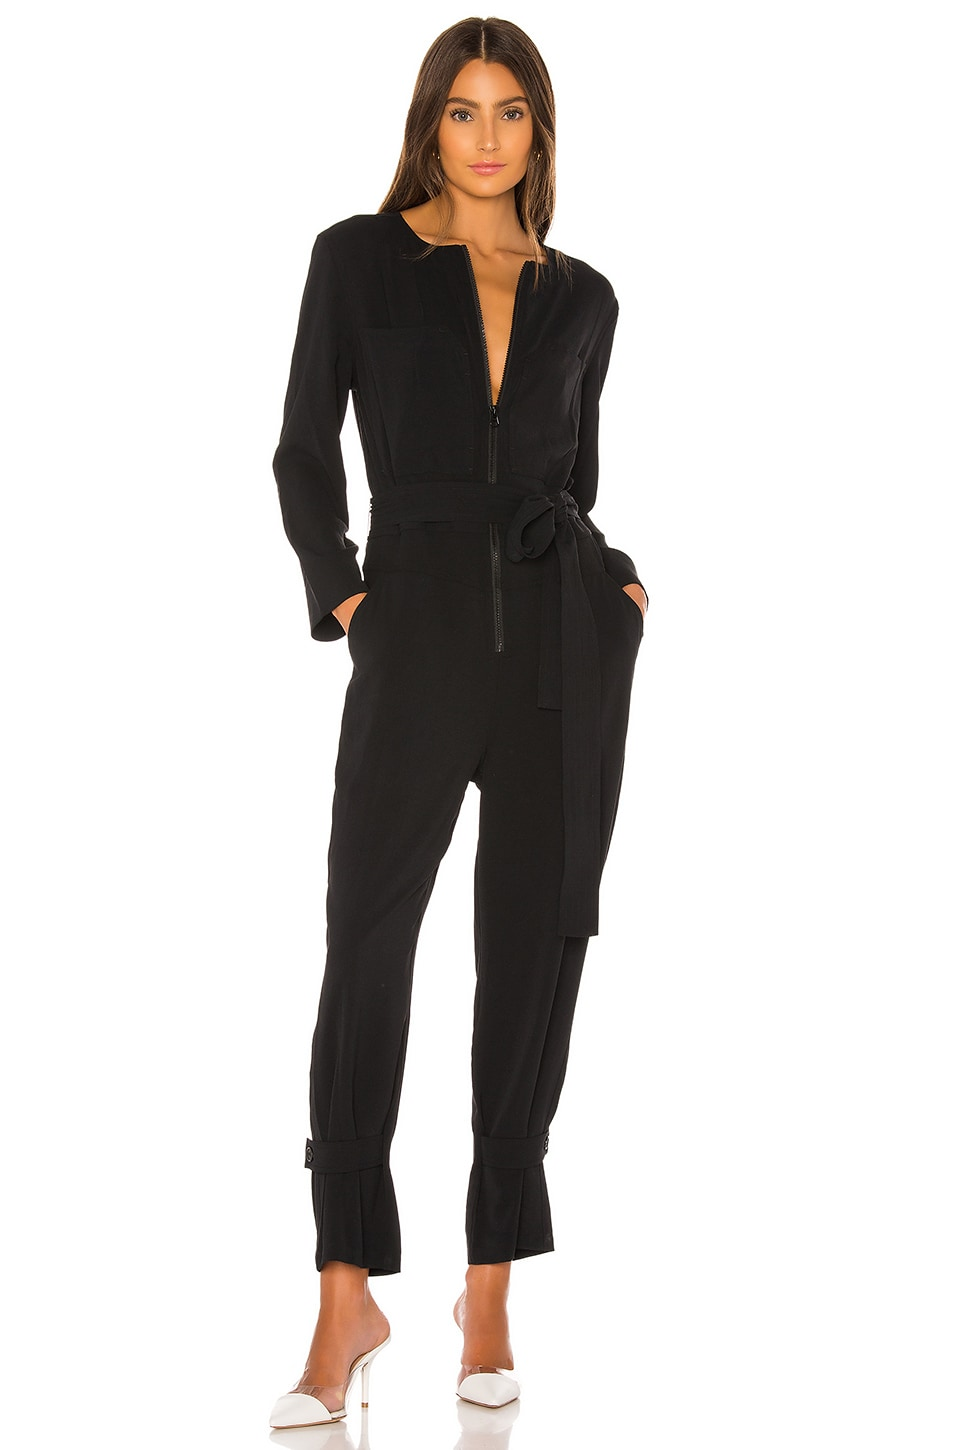 Rebecca Minkoff Clover Jumpsuit in Black